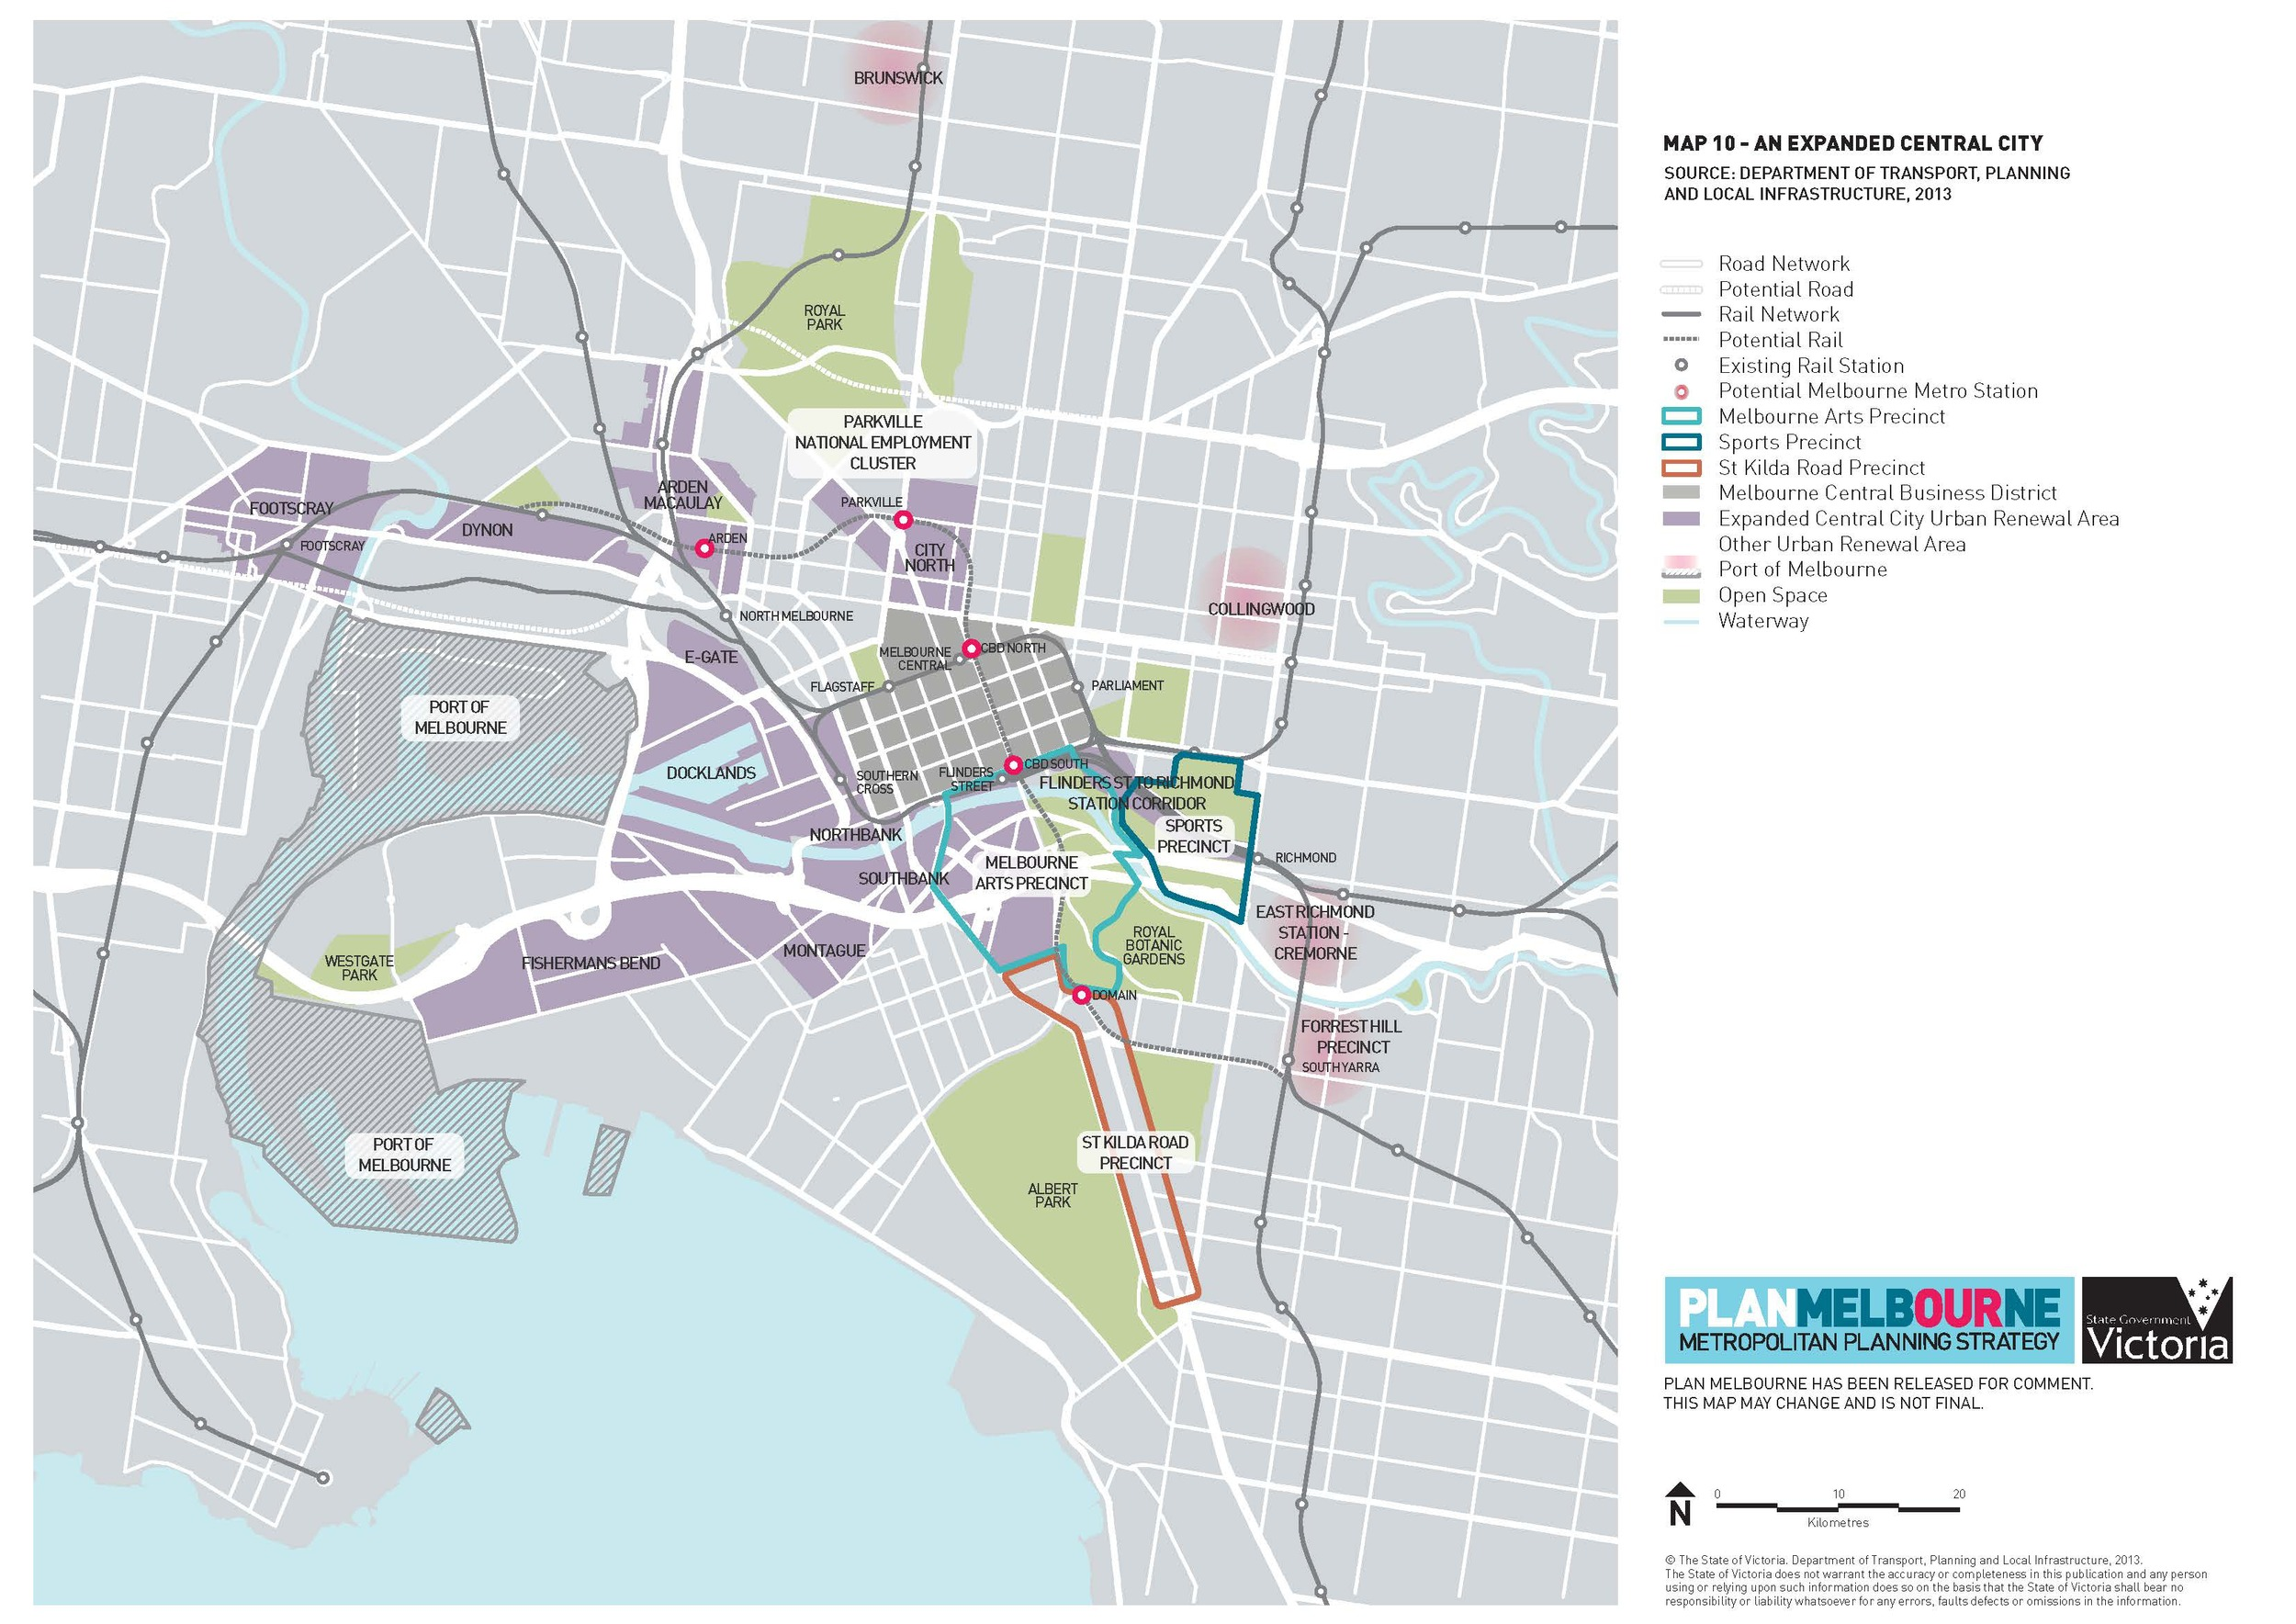 Fig.1. The Expanded Capital City according to Plan Melbourne October 2013